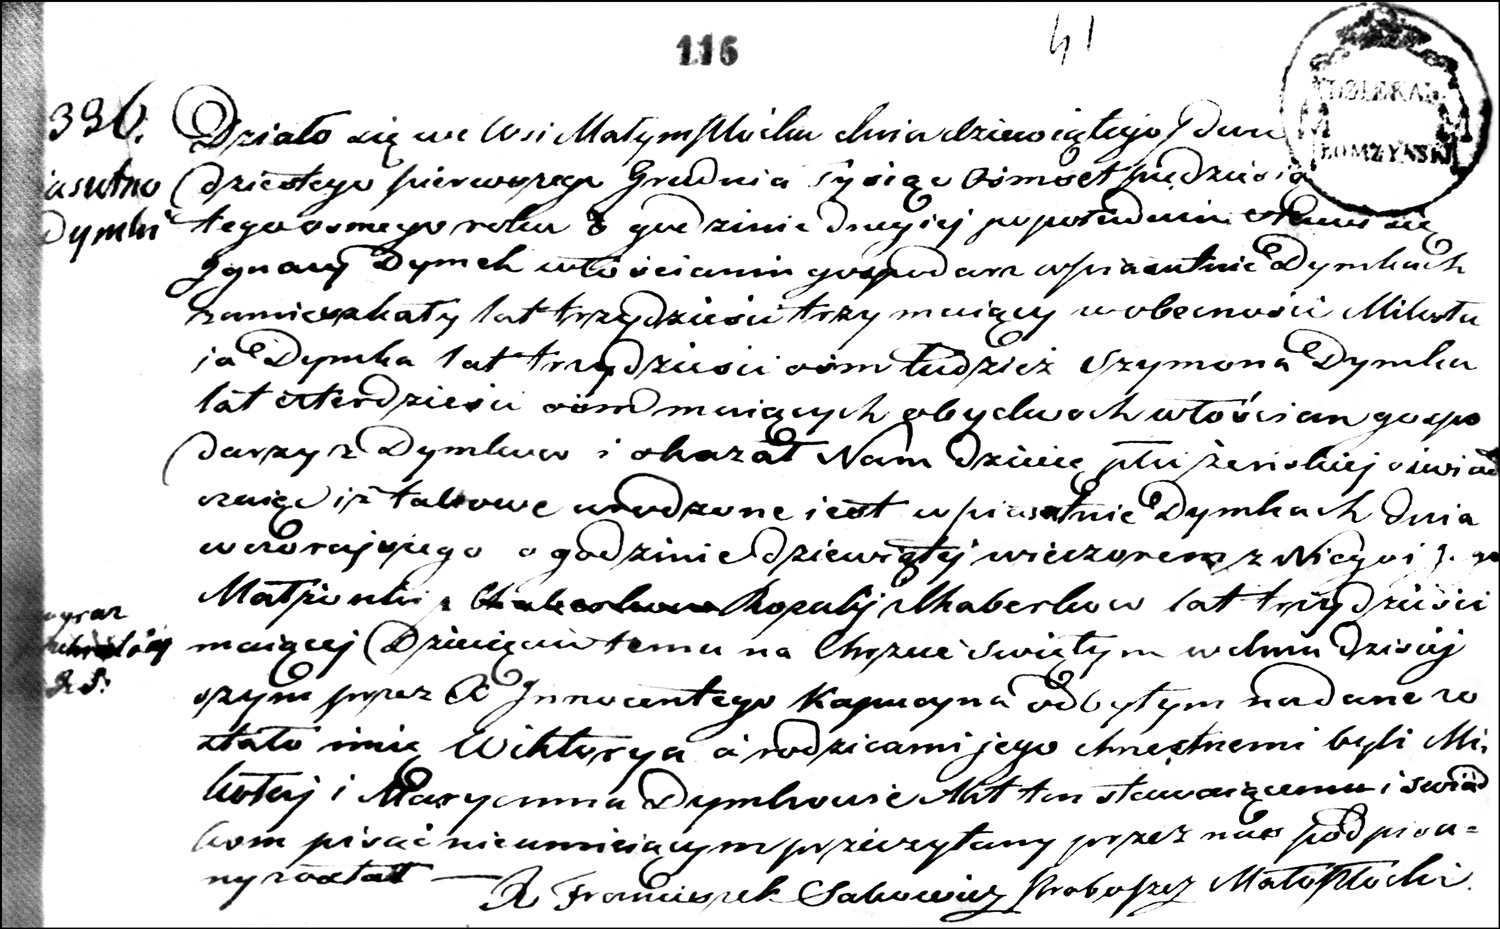 The Birth and Baptismal Record of Wiktorya Dymek - 1858